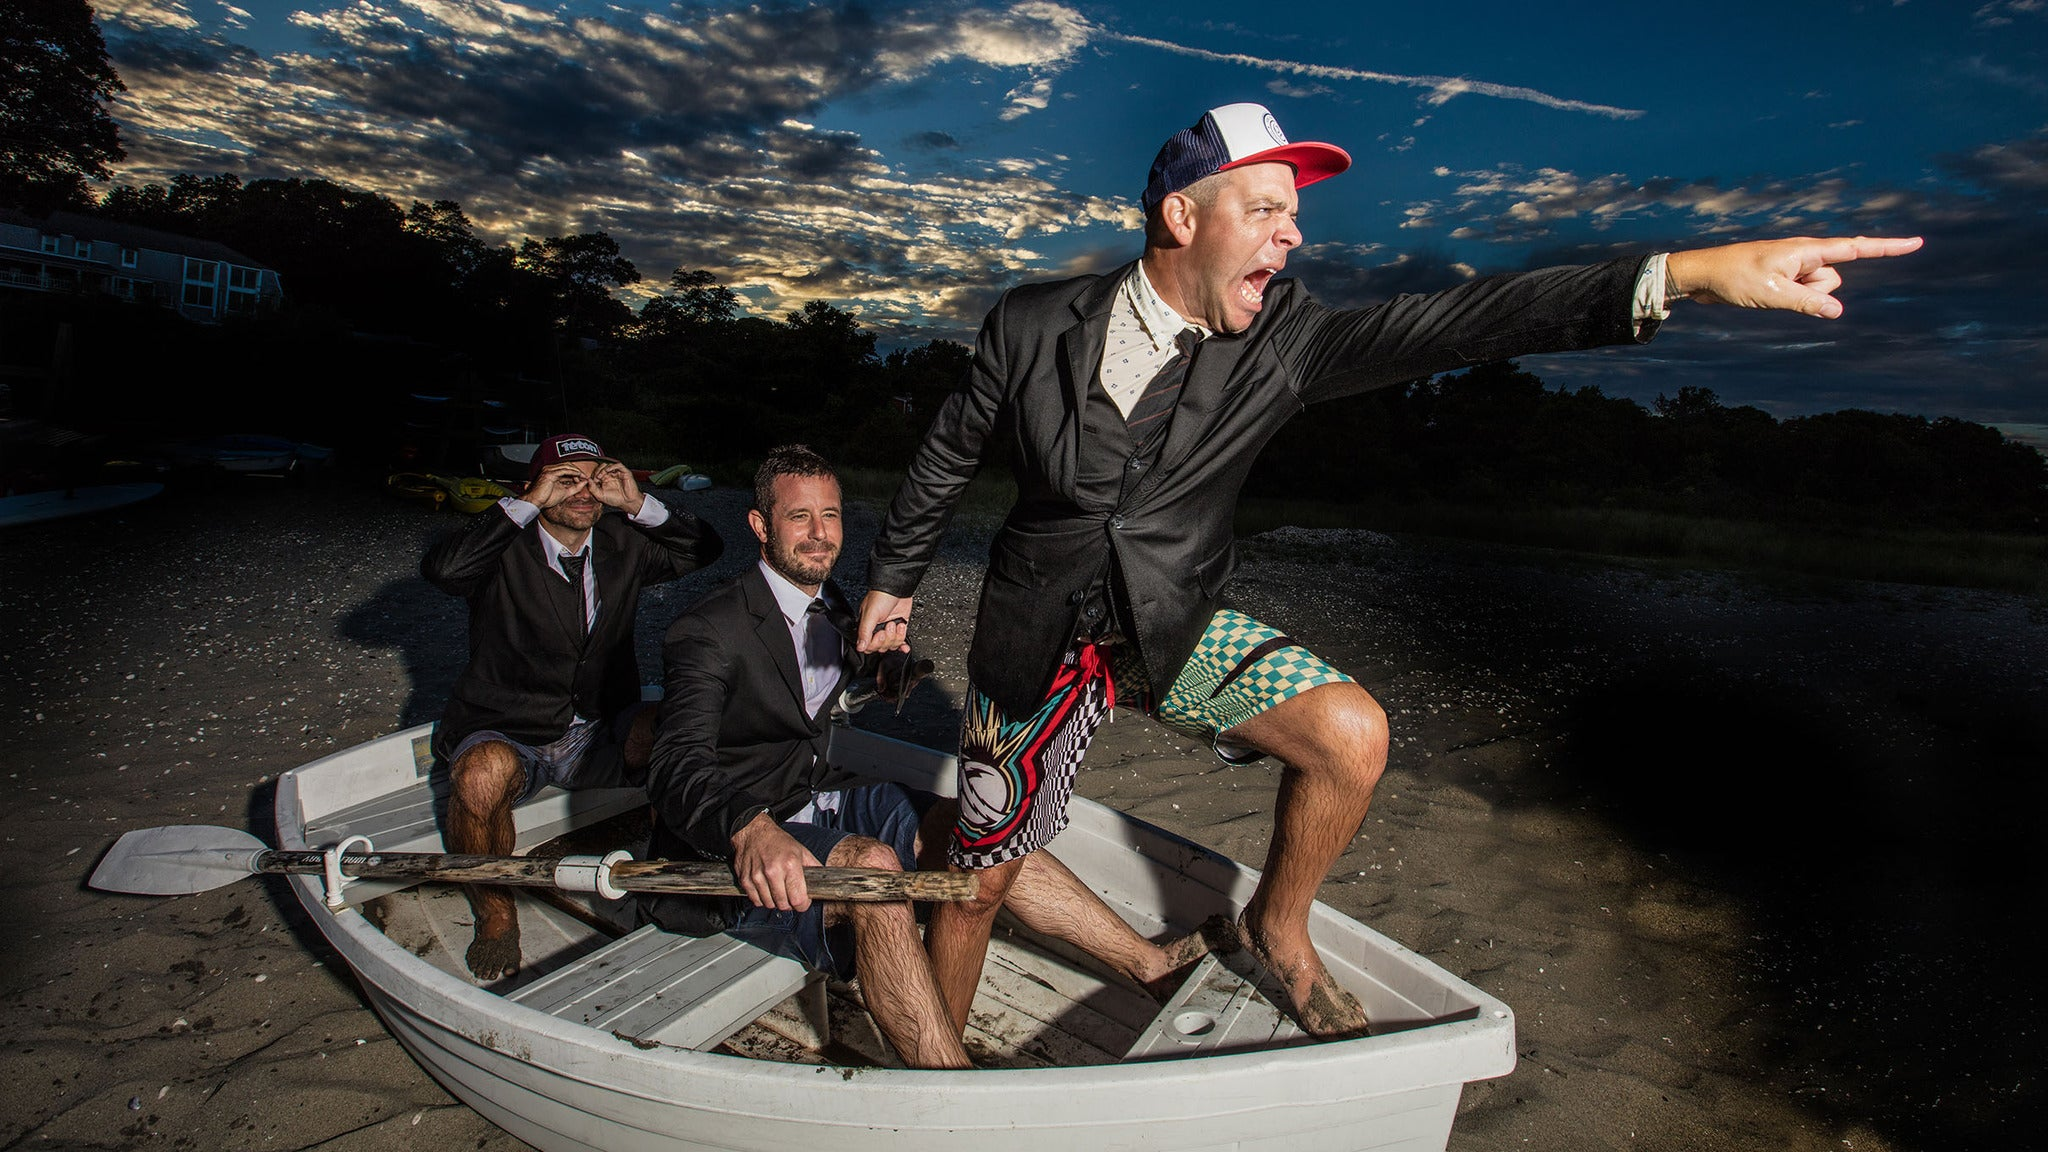 Badfish: a Tribute to Sublime | Under the Sun Tour